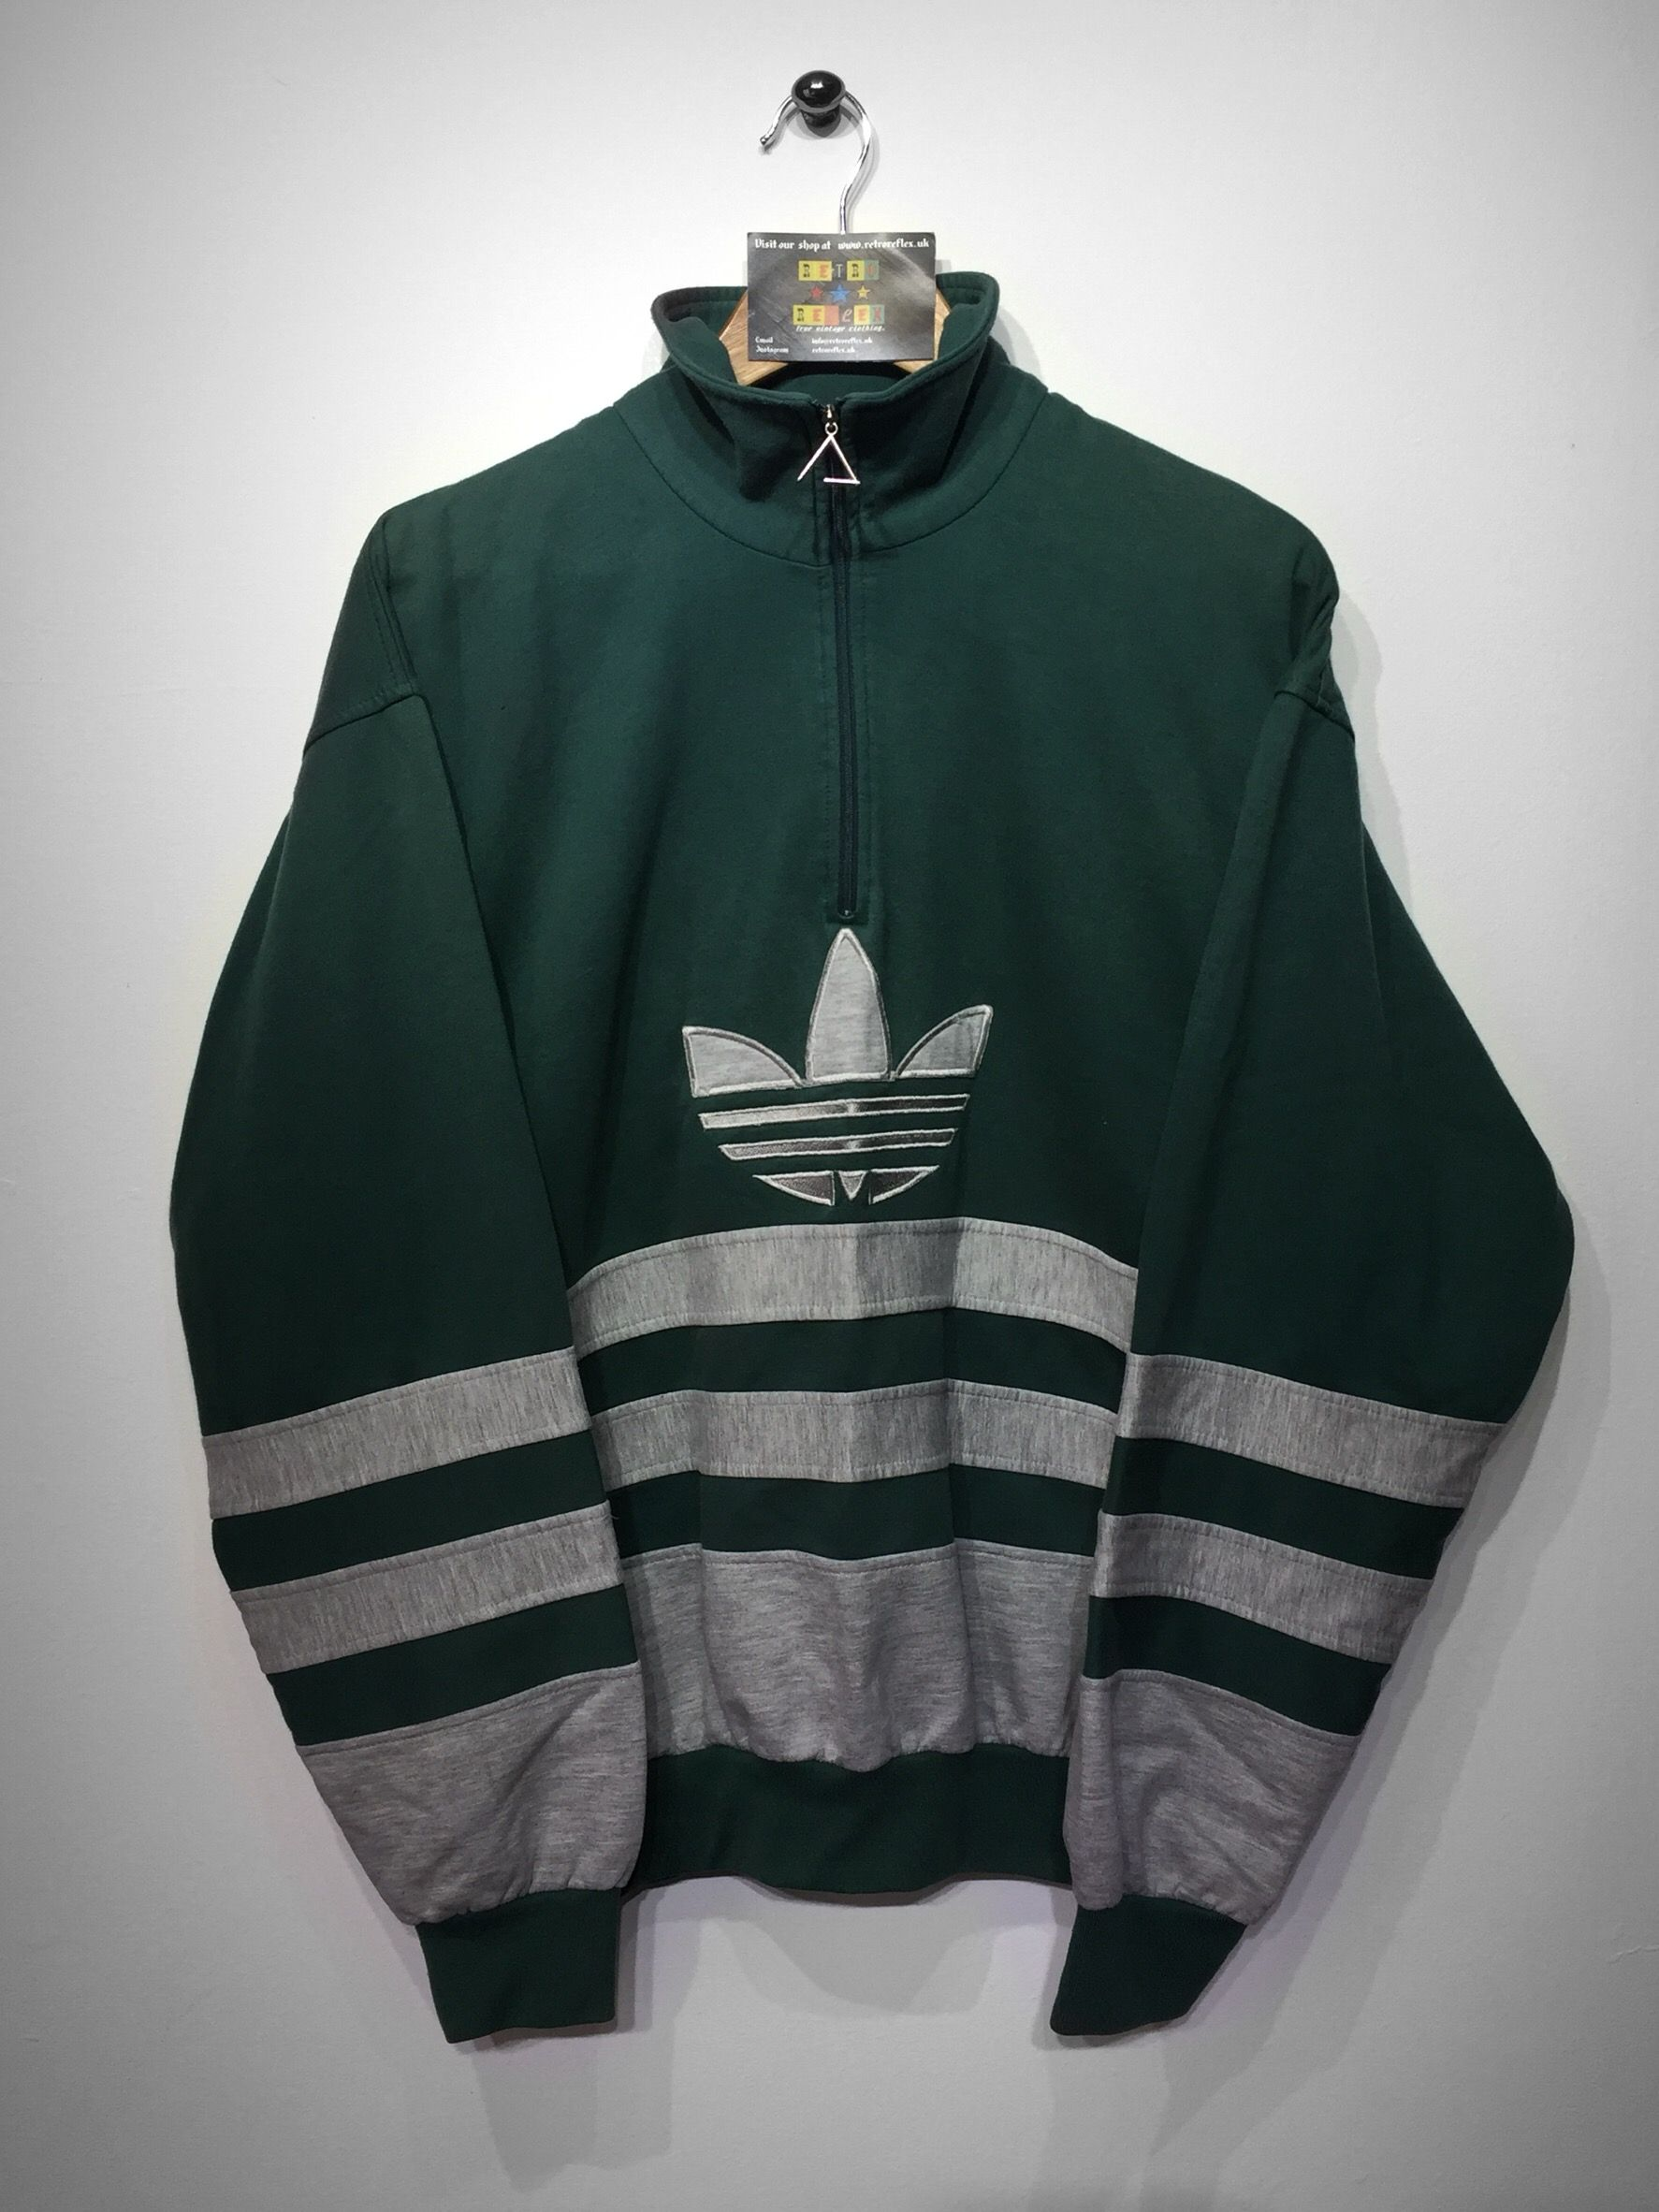 Adidas 14 zip sweatshirt size Medium (but Fits Oversized